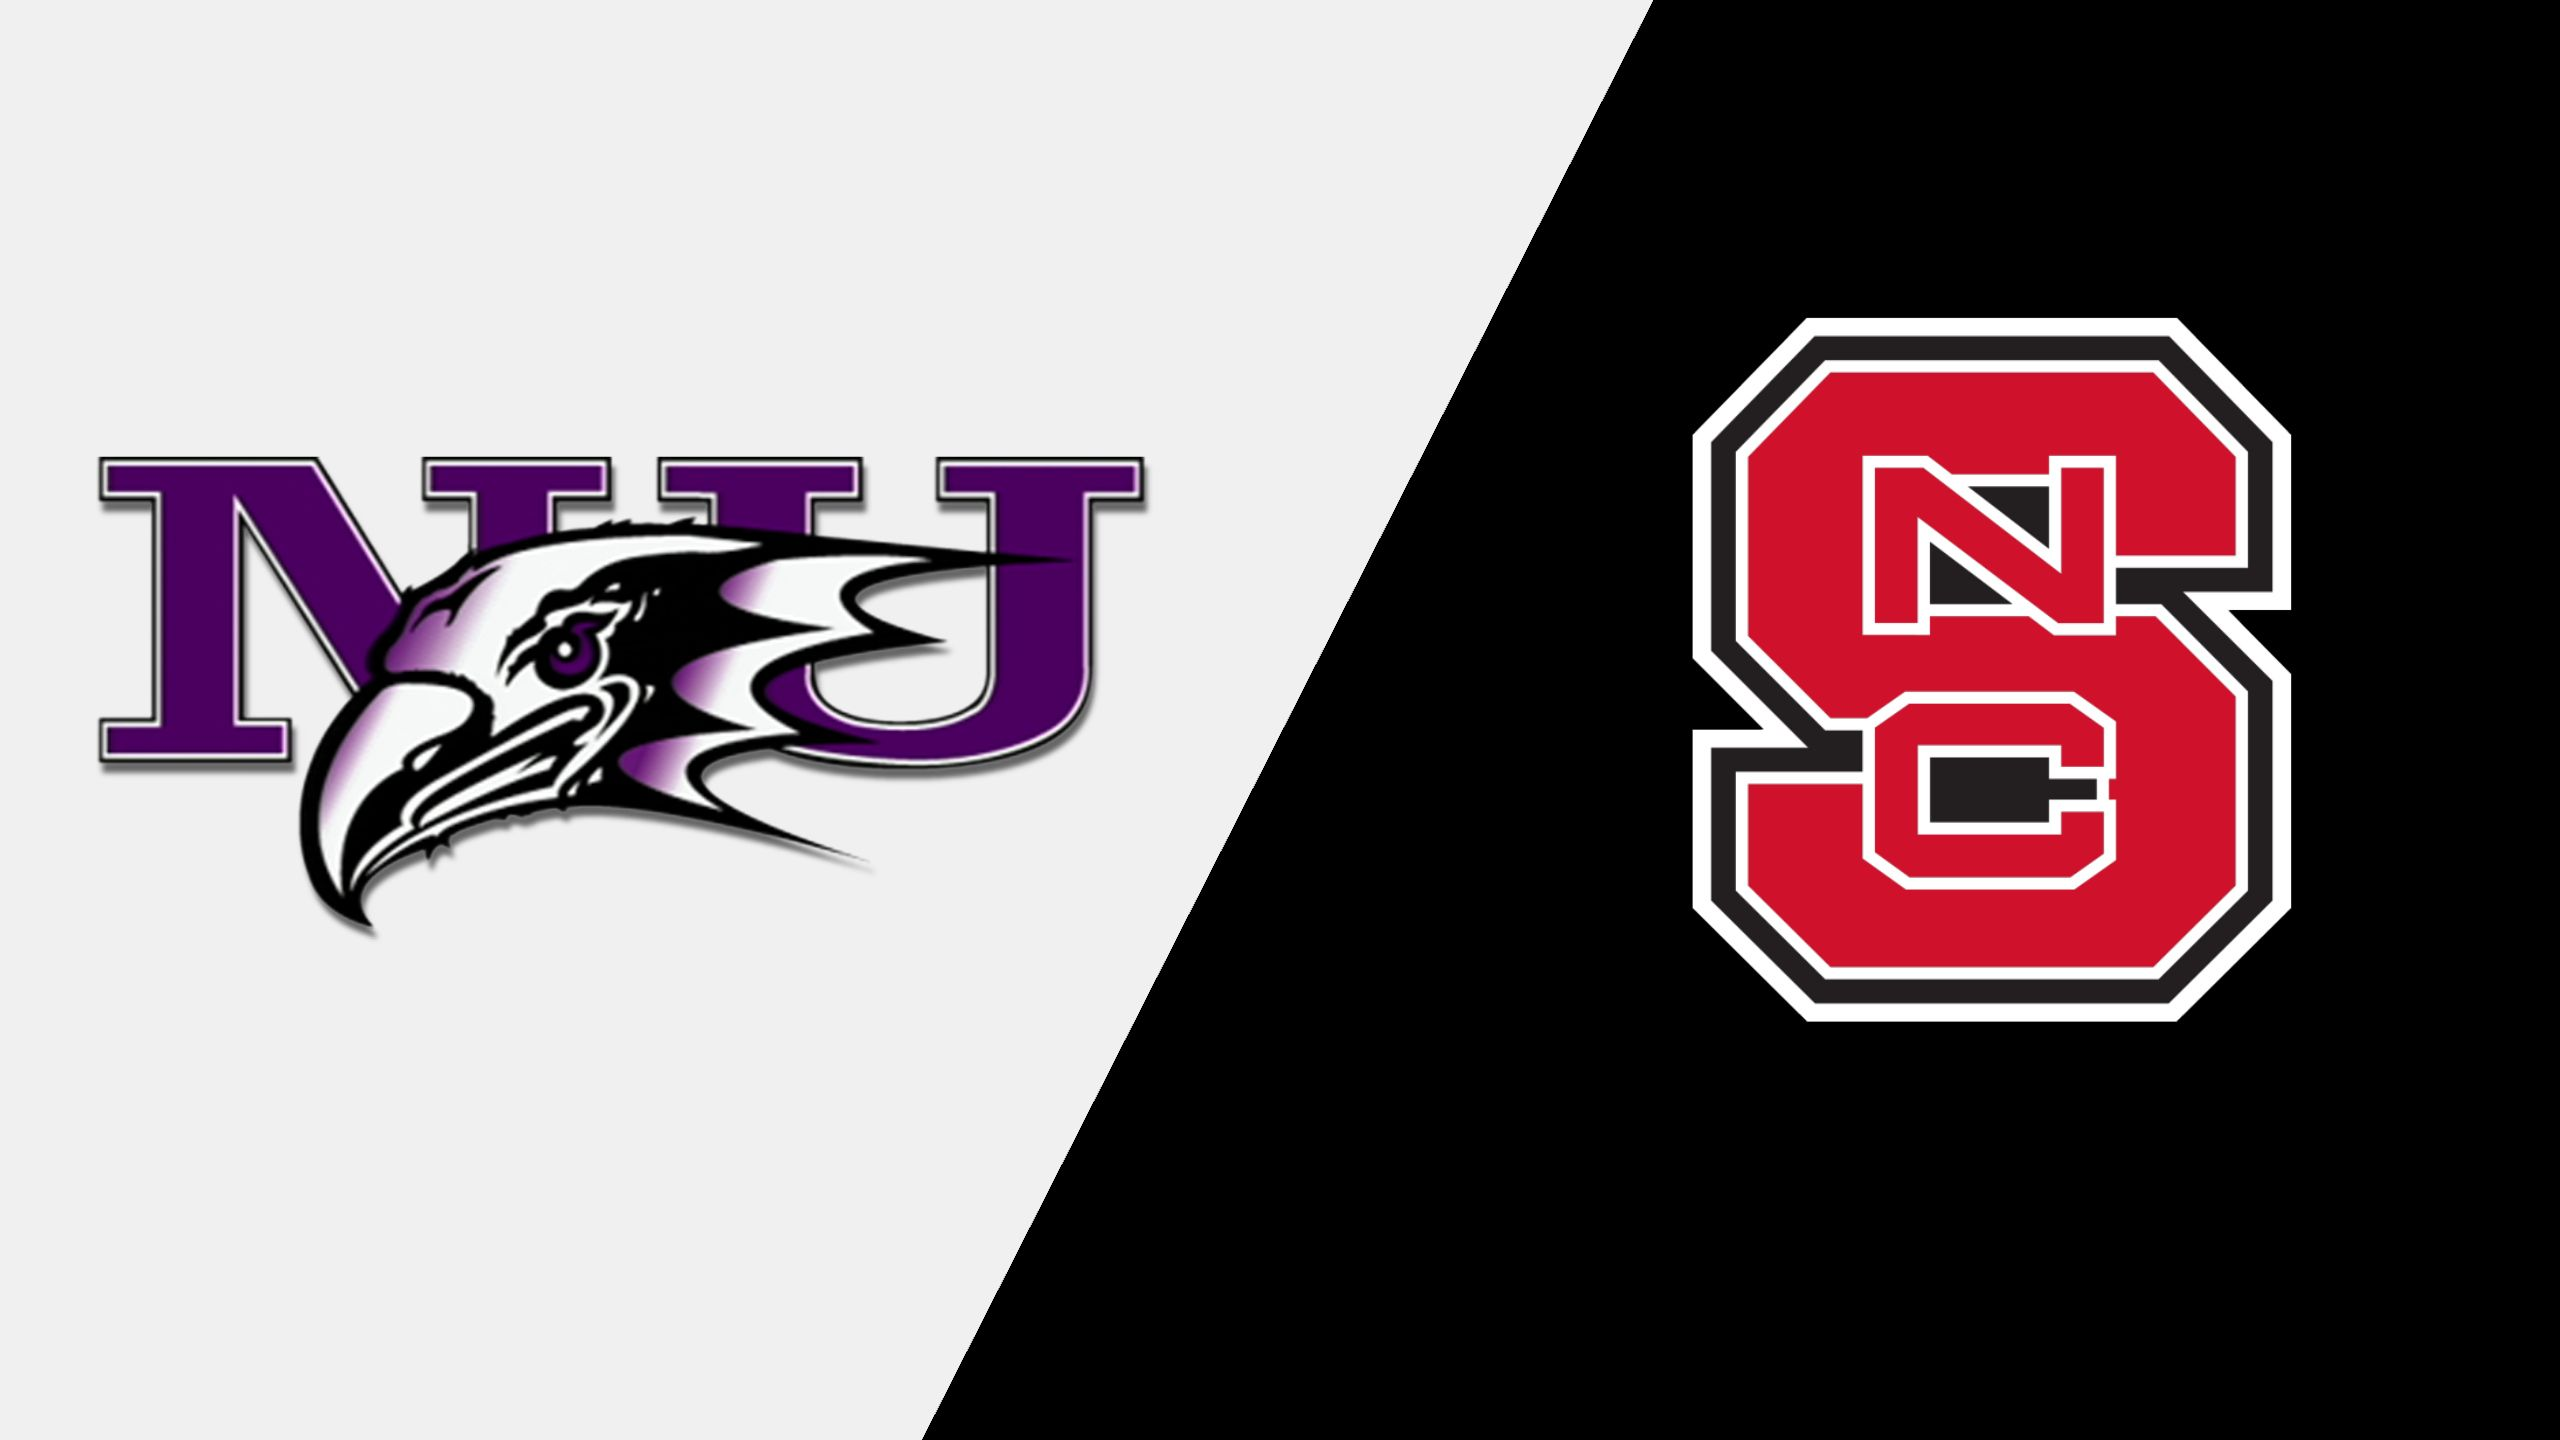 Niagara vs. NC State (Softball)